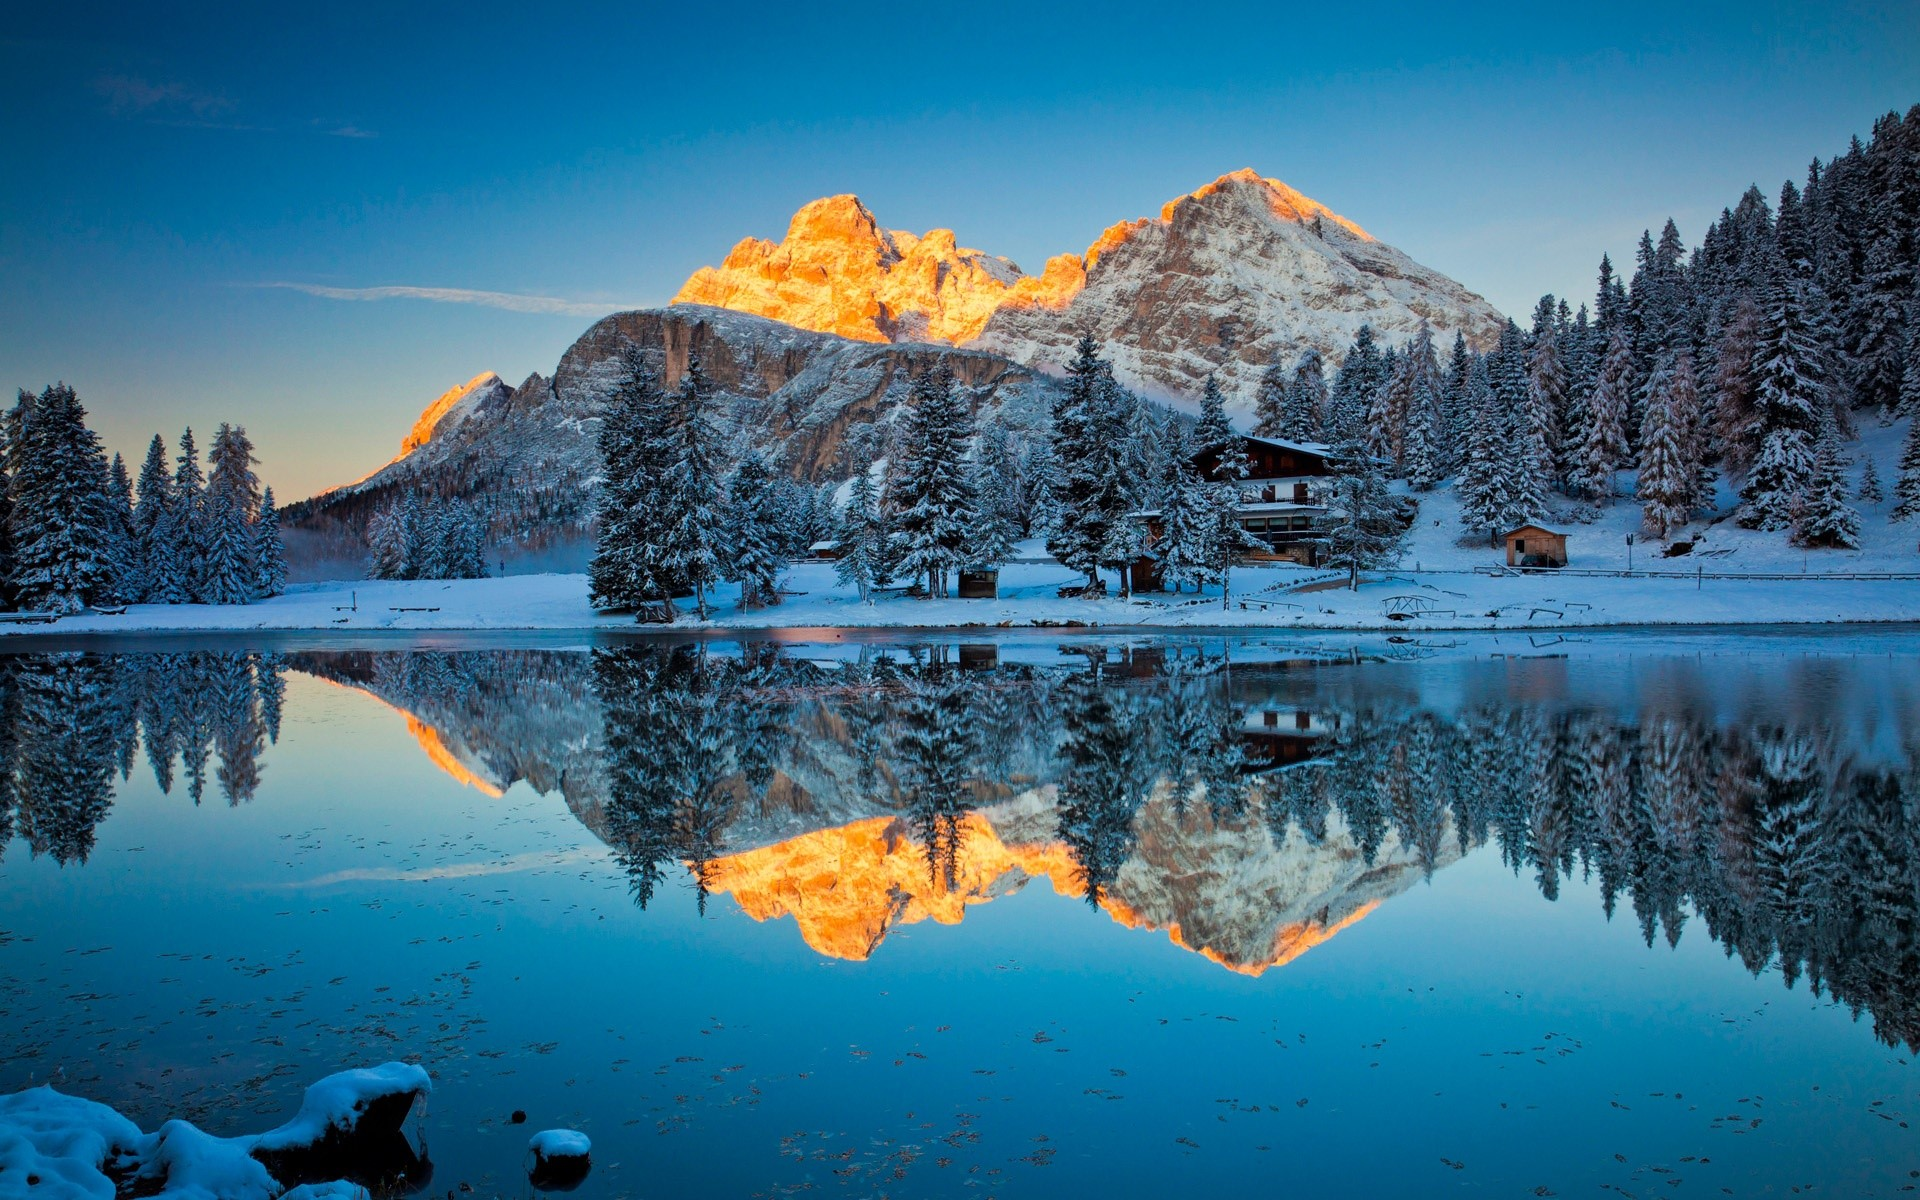 Wallpaper Reflections in Lake Misurina